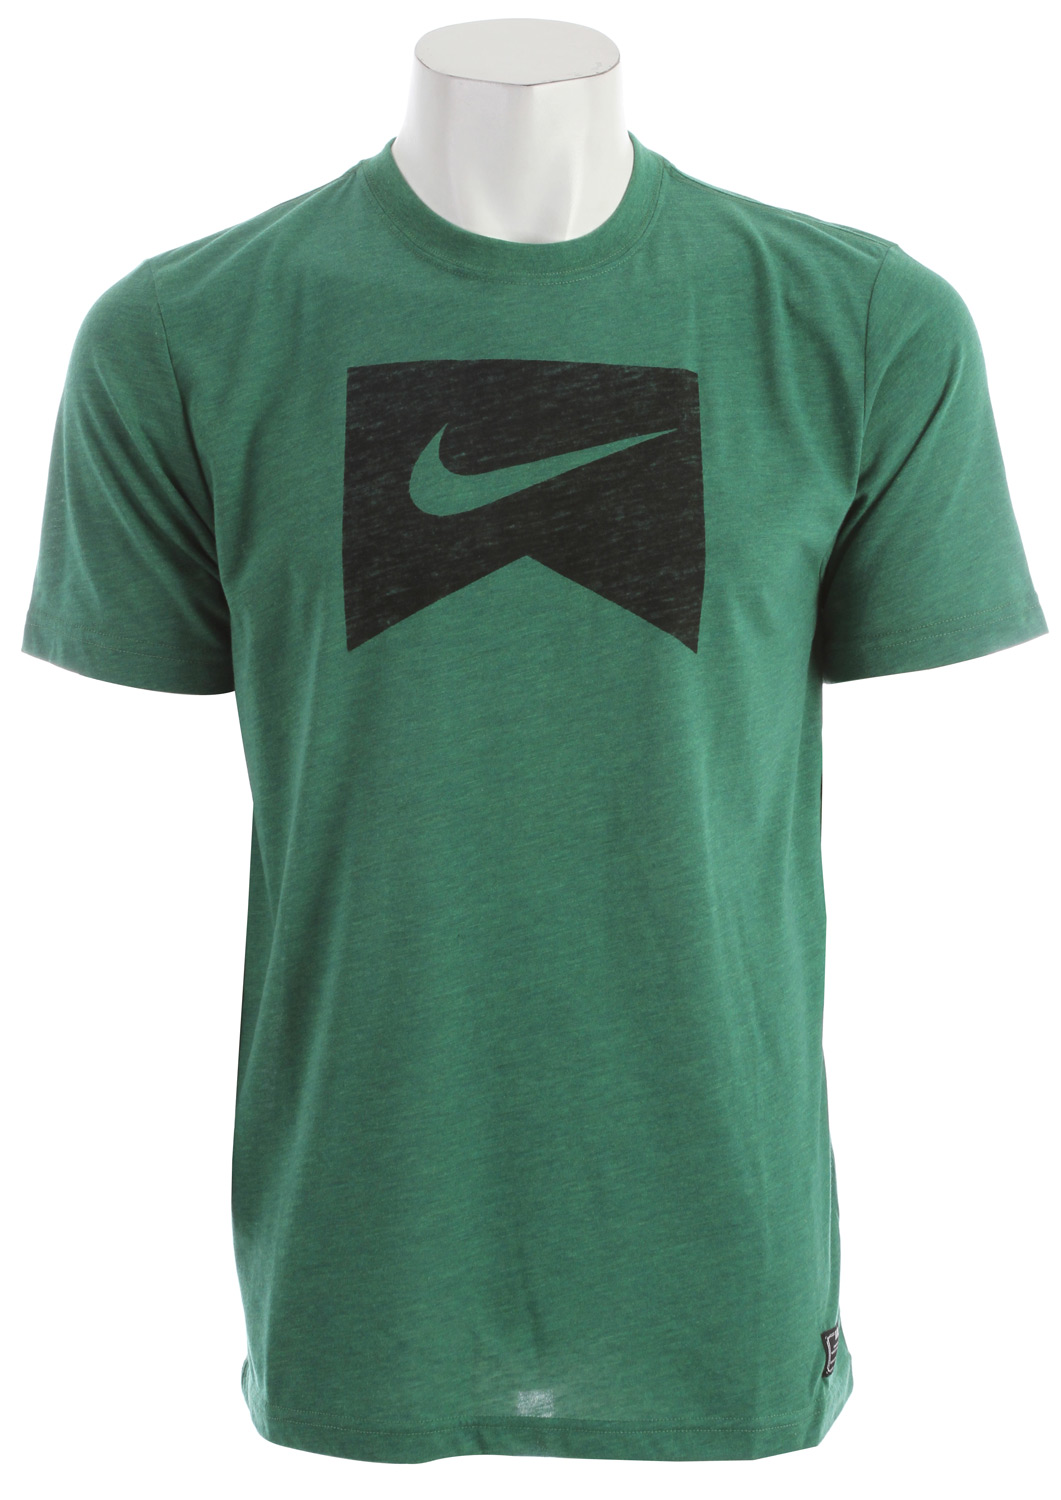 Skateboard Key Features of the Nike Ribbon Logo Dri-Fit T-Shirt: Body: Dri-FIT 130g. 75% polyester (10% recycled)/13% cotton (10% organic)/12% rayon plain jersey. Rib: 215g. 50% polyester/25% cotton (10% organic)/25% rayon rib. Dri-FIT blend tee Graphic executed with a soft hand screen print. - $28.00